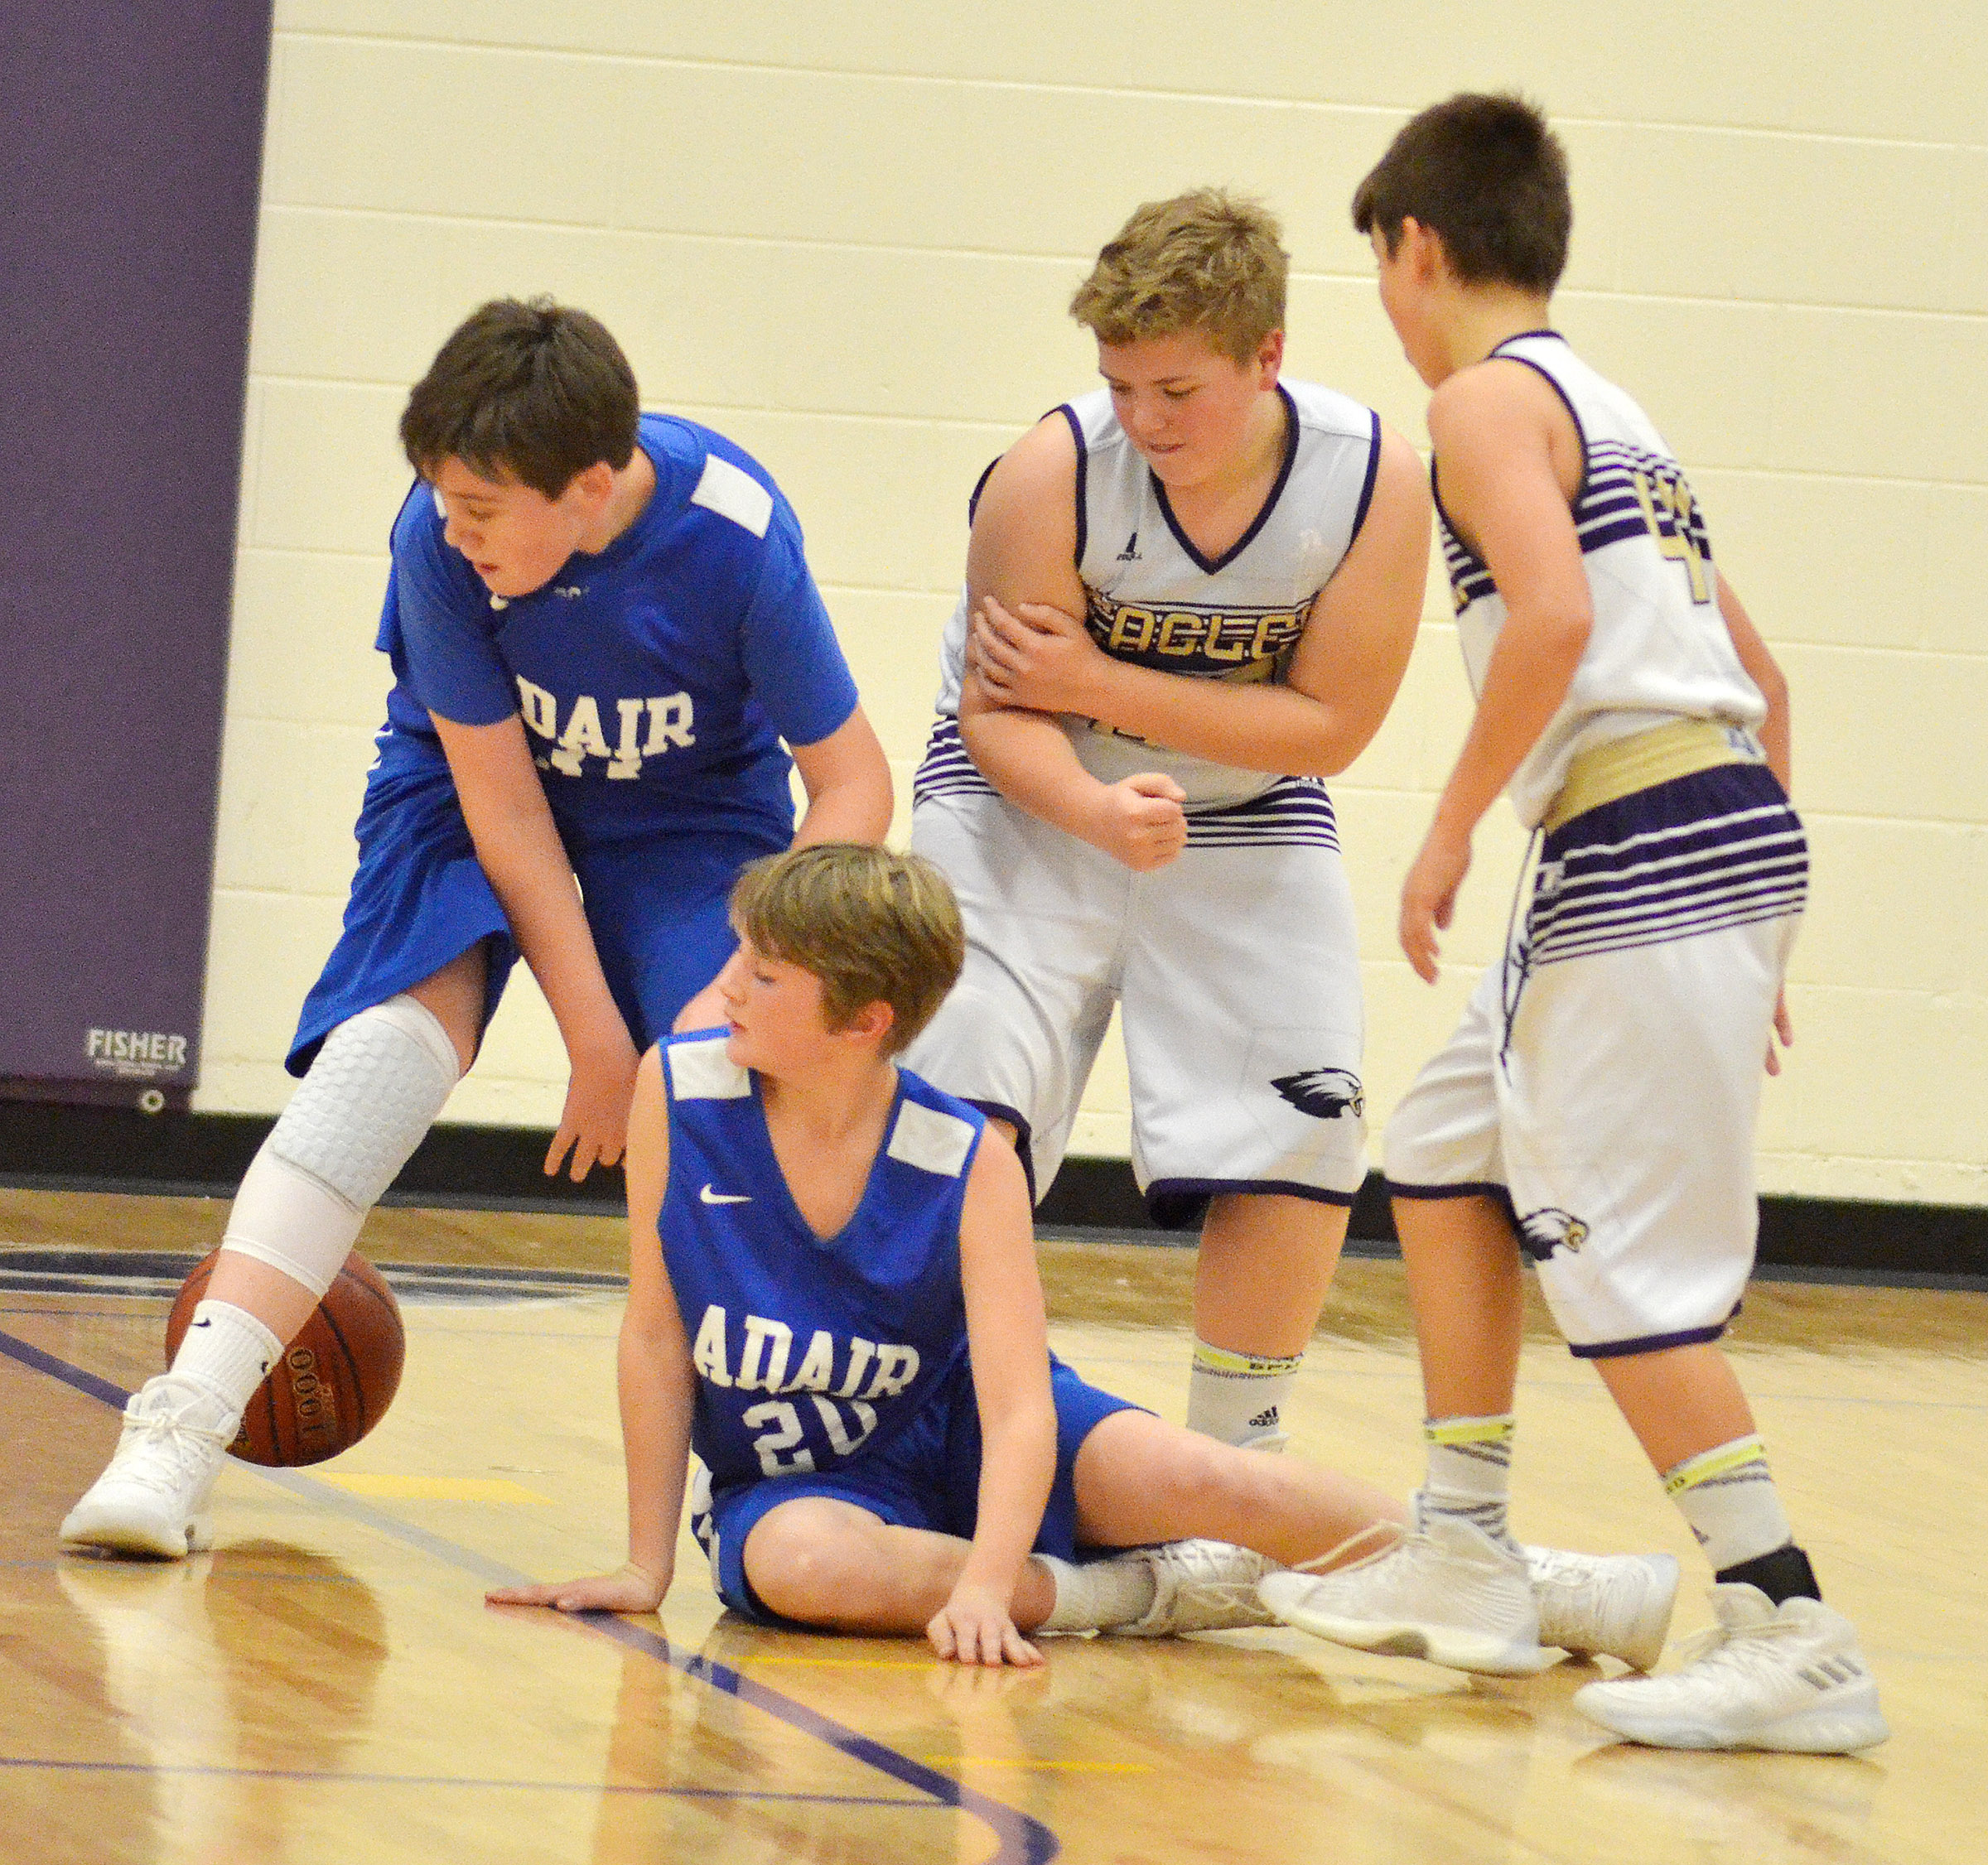 CMS sixth-graders Ryan Grubbs, at left, and Kaden Bloyd fight for the ball.